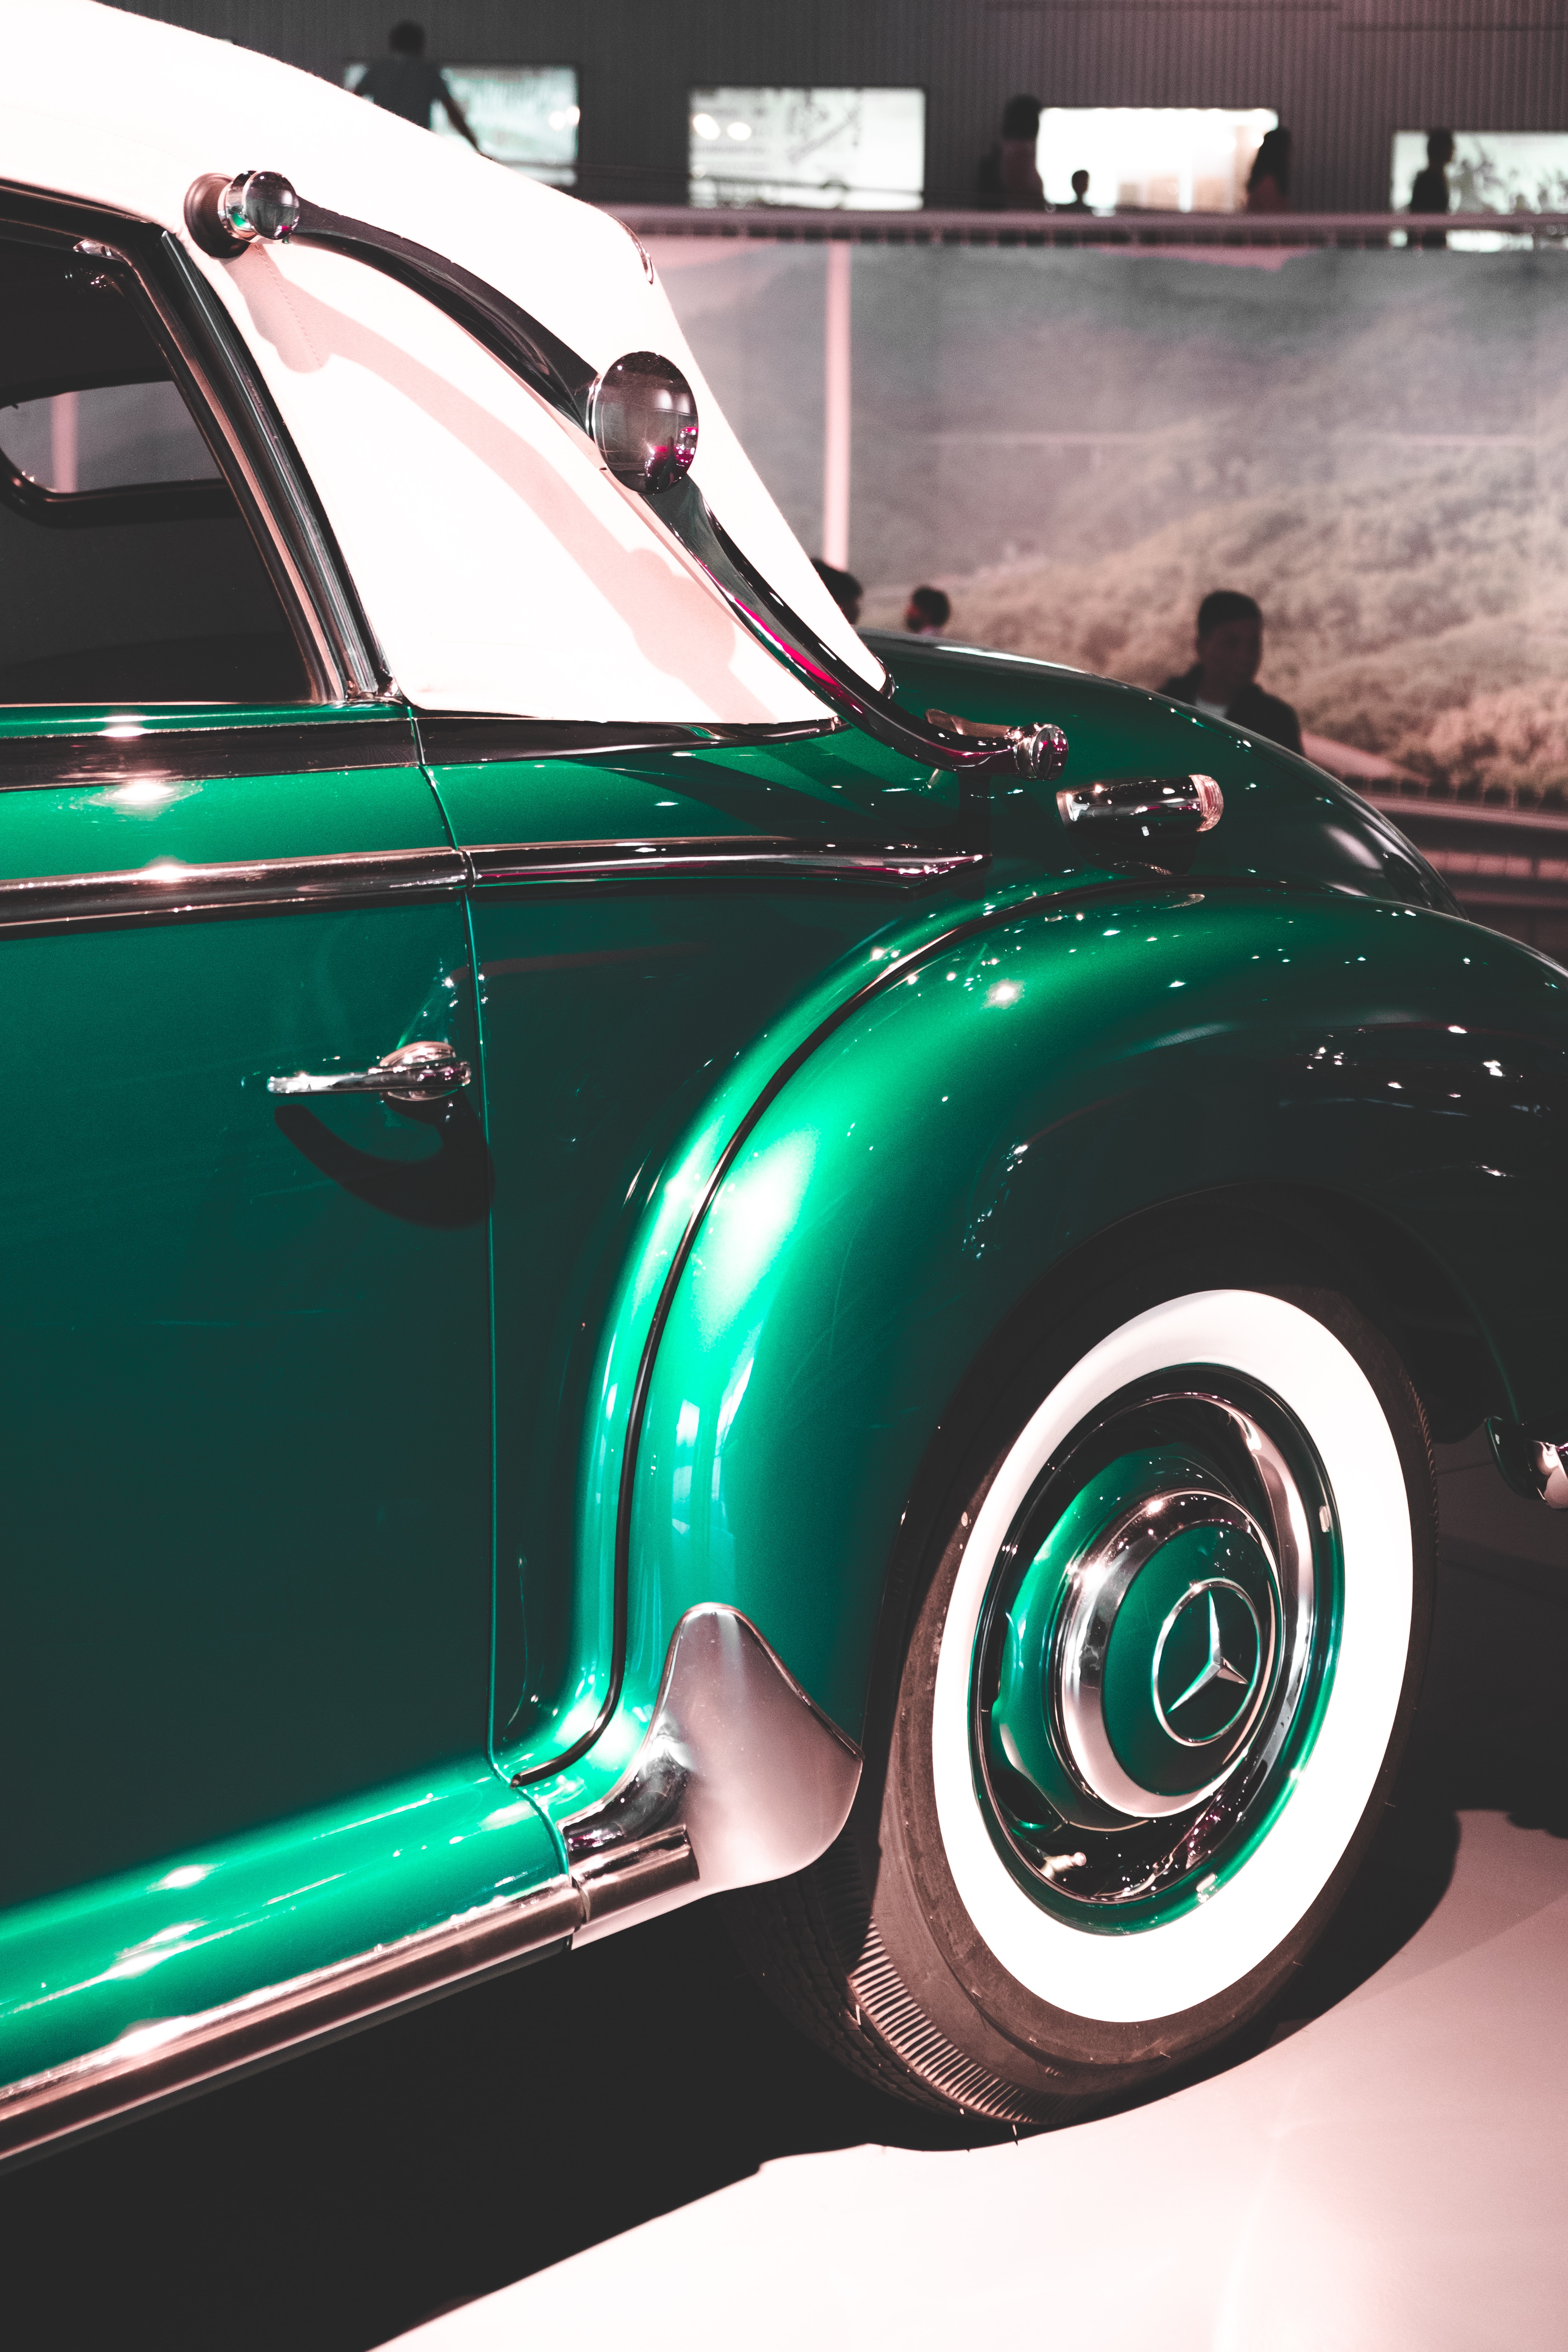 green and white vehicle